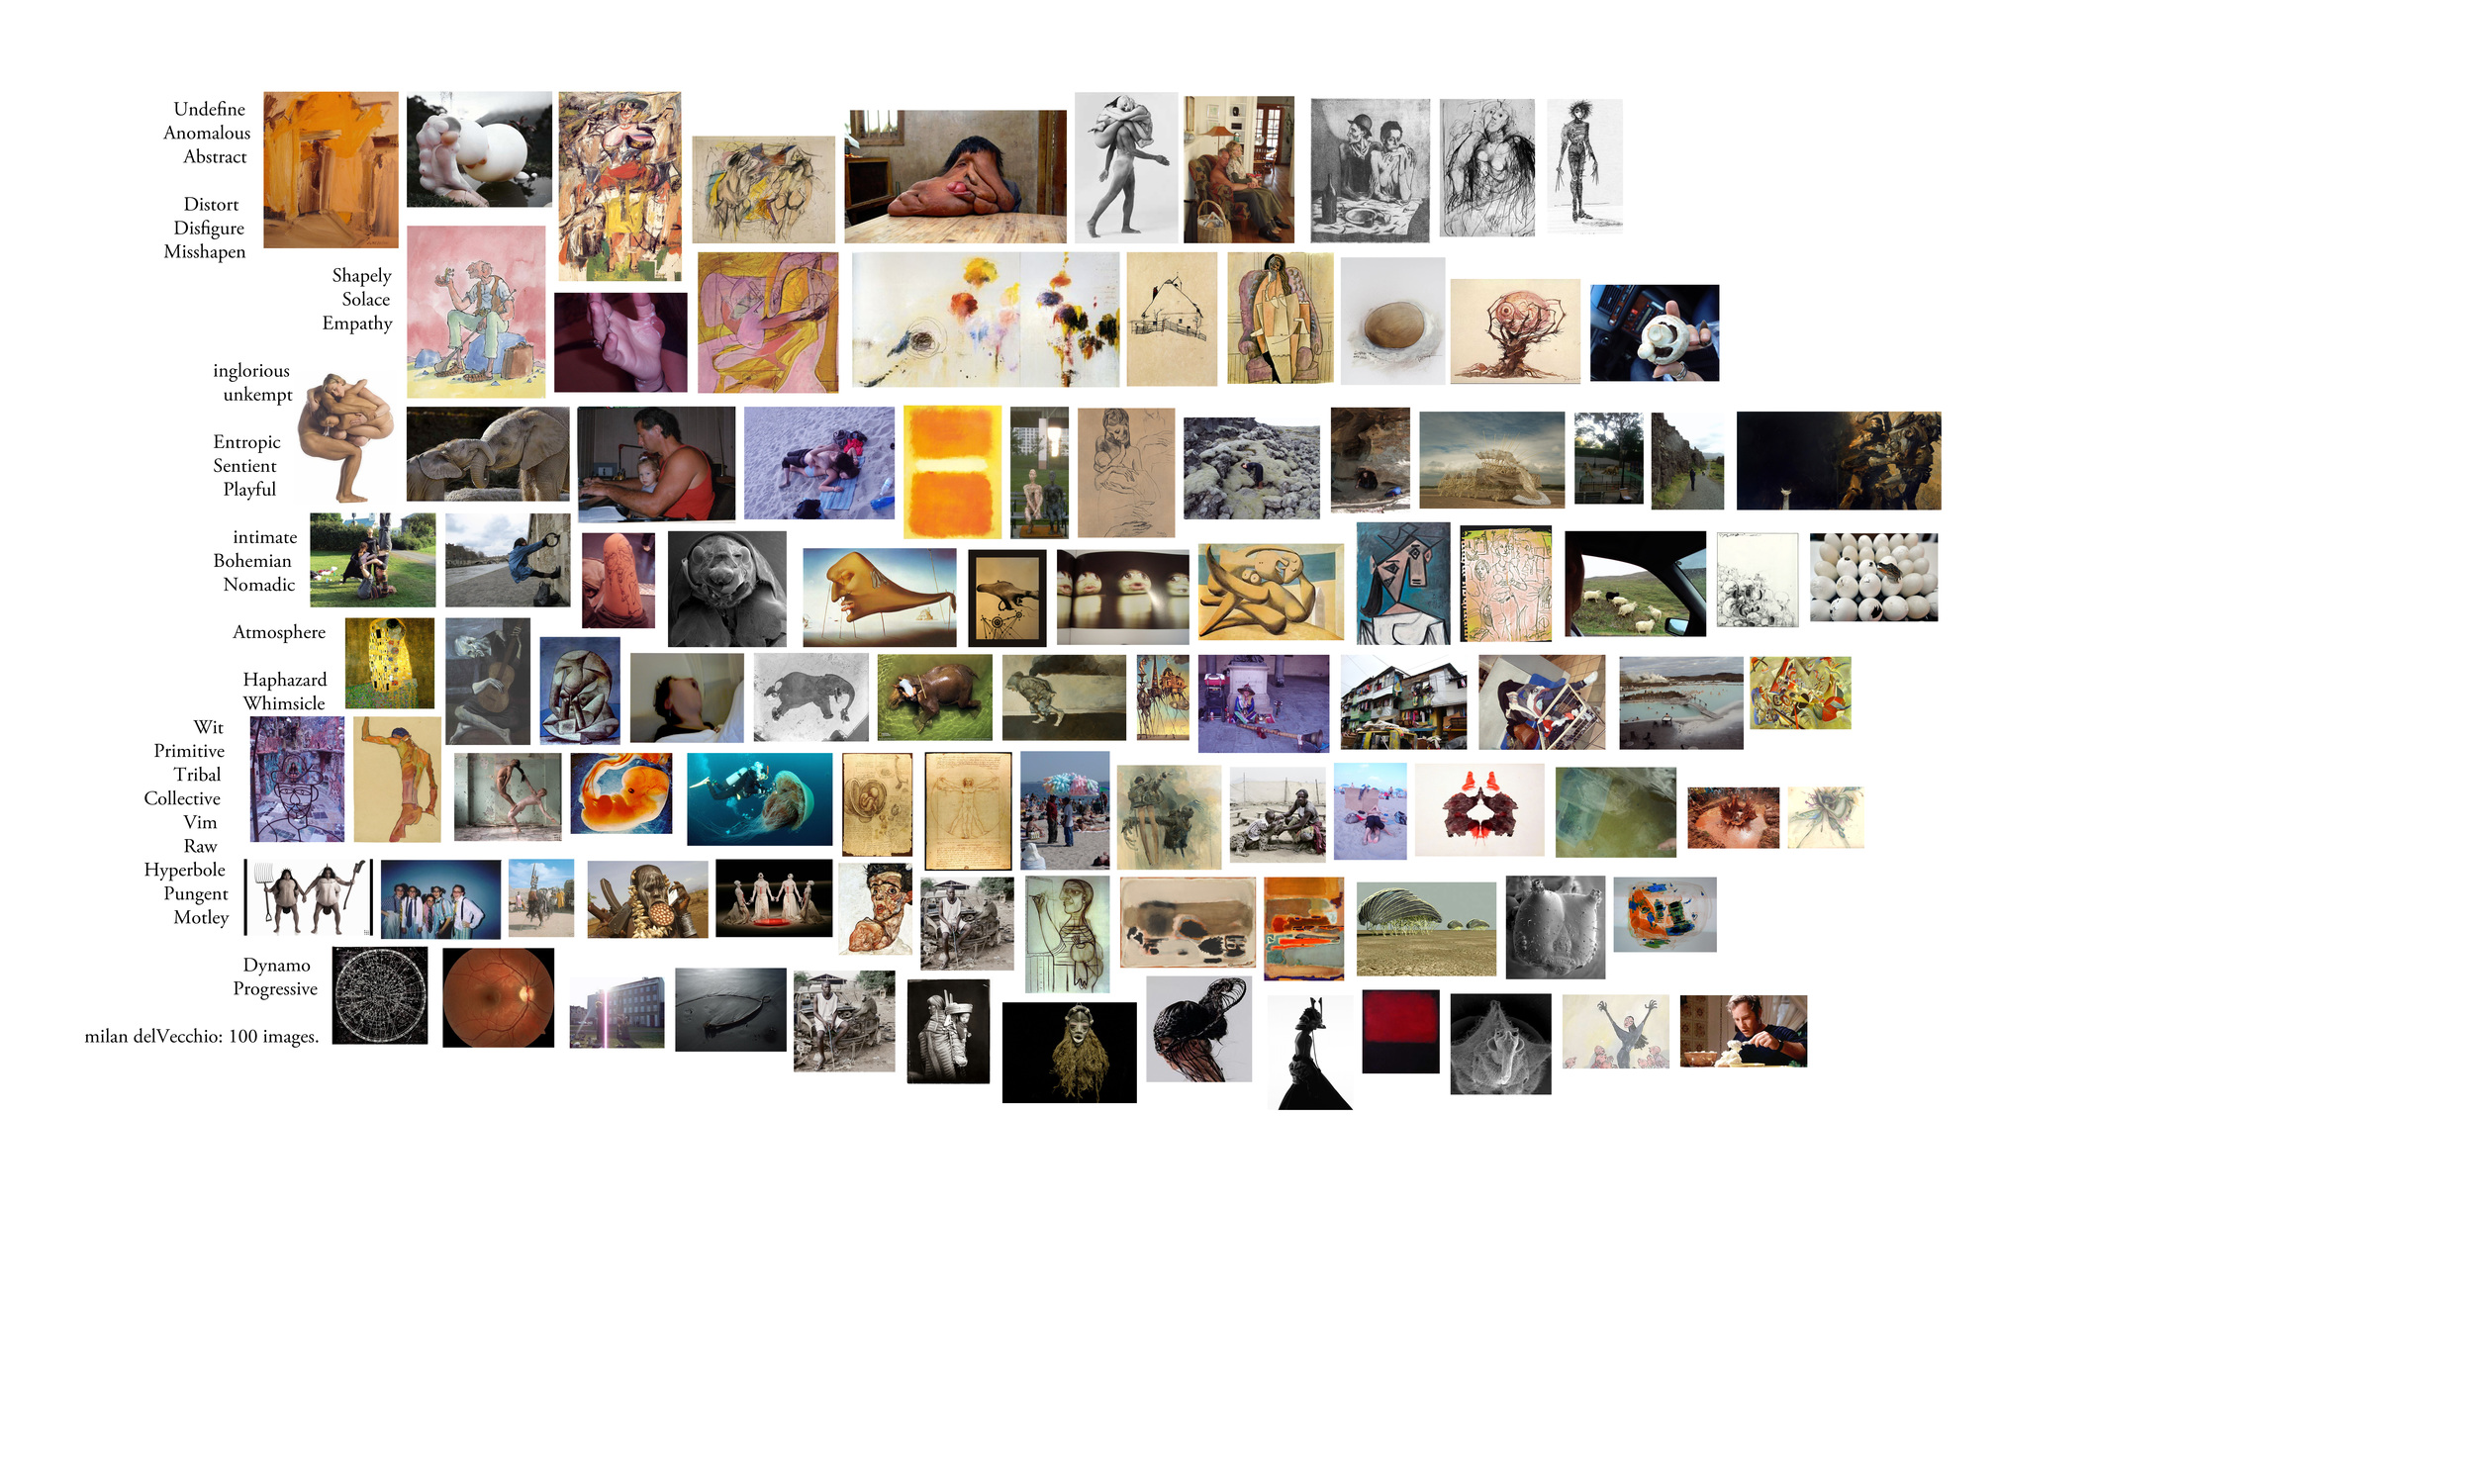 100 Images Project